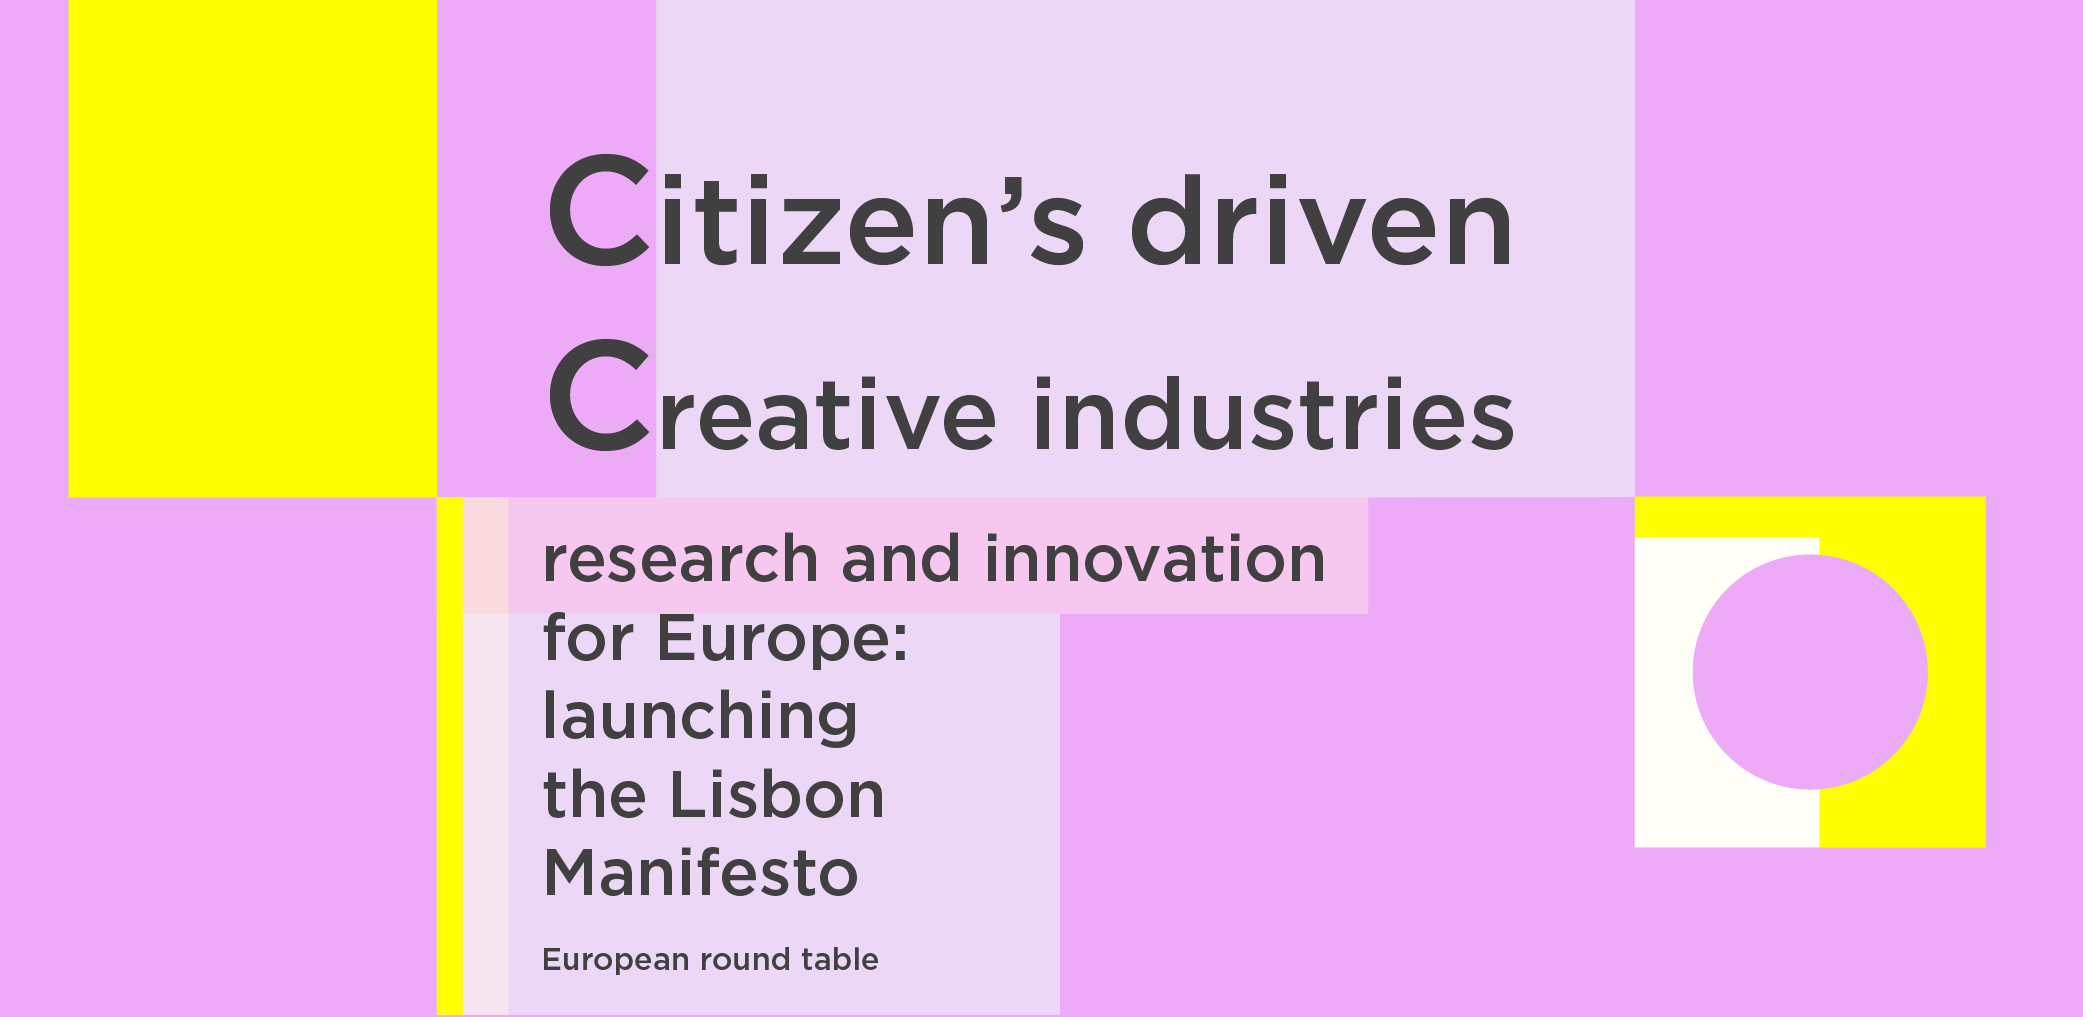 Citizen-centered, Research-driven Creative Industries for Europe: Launching the Lisbon Manifesto